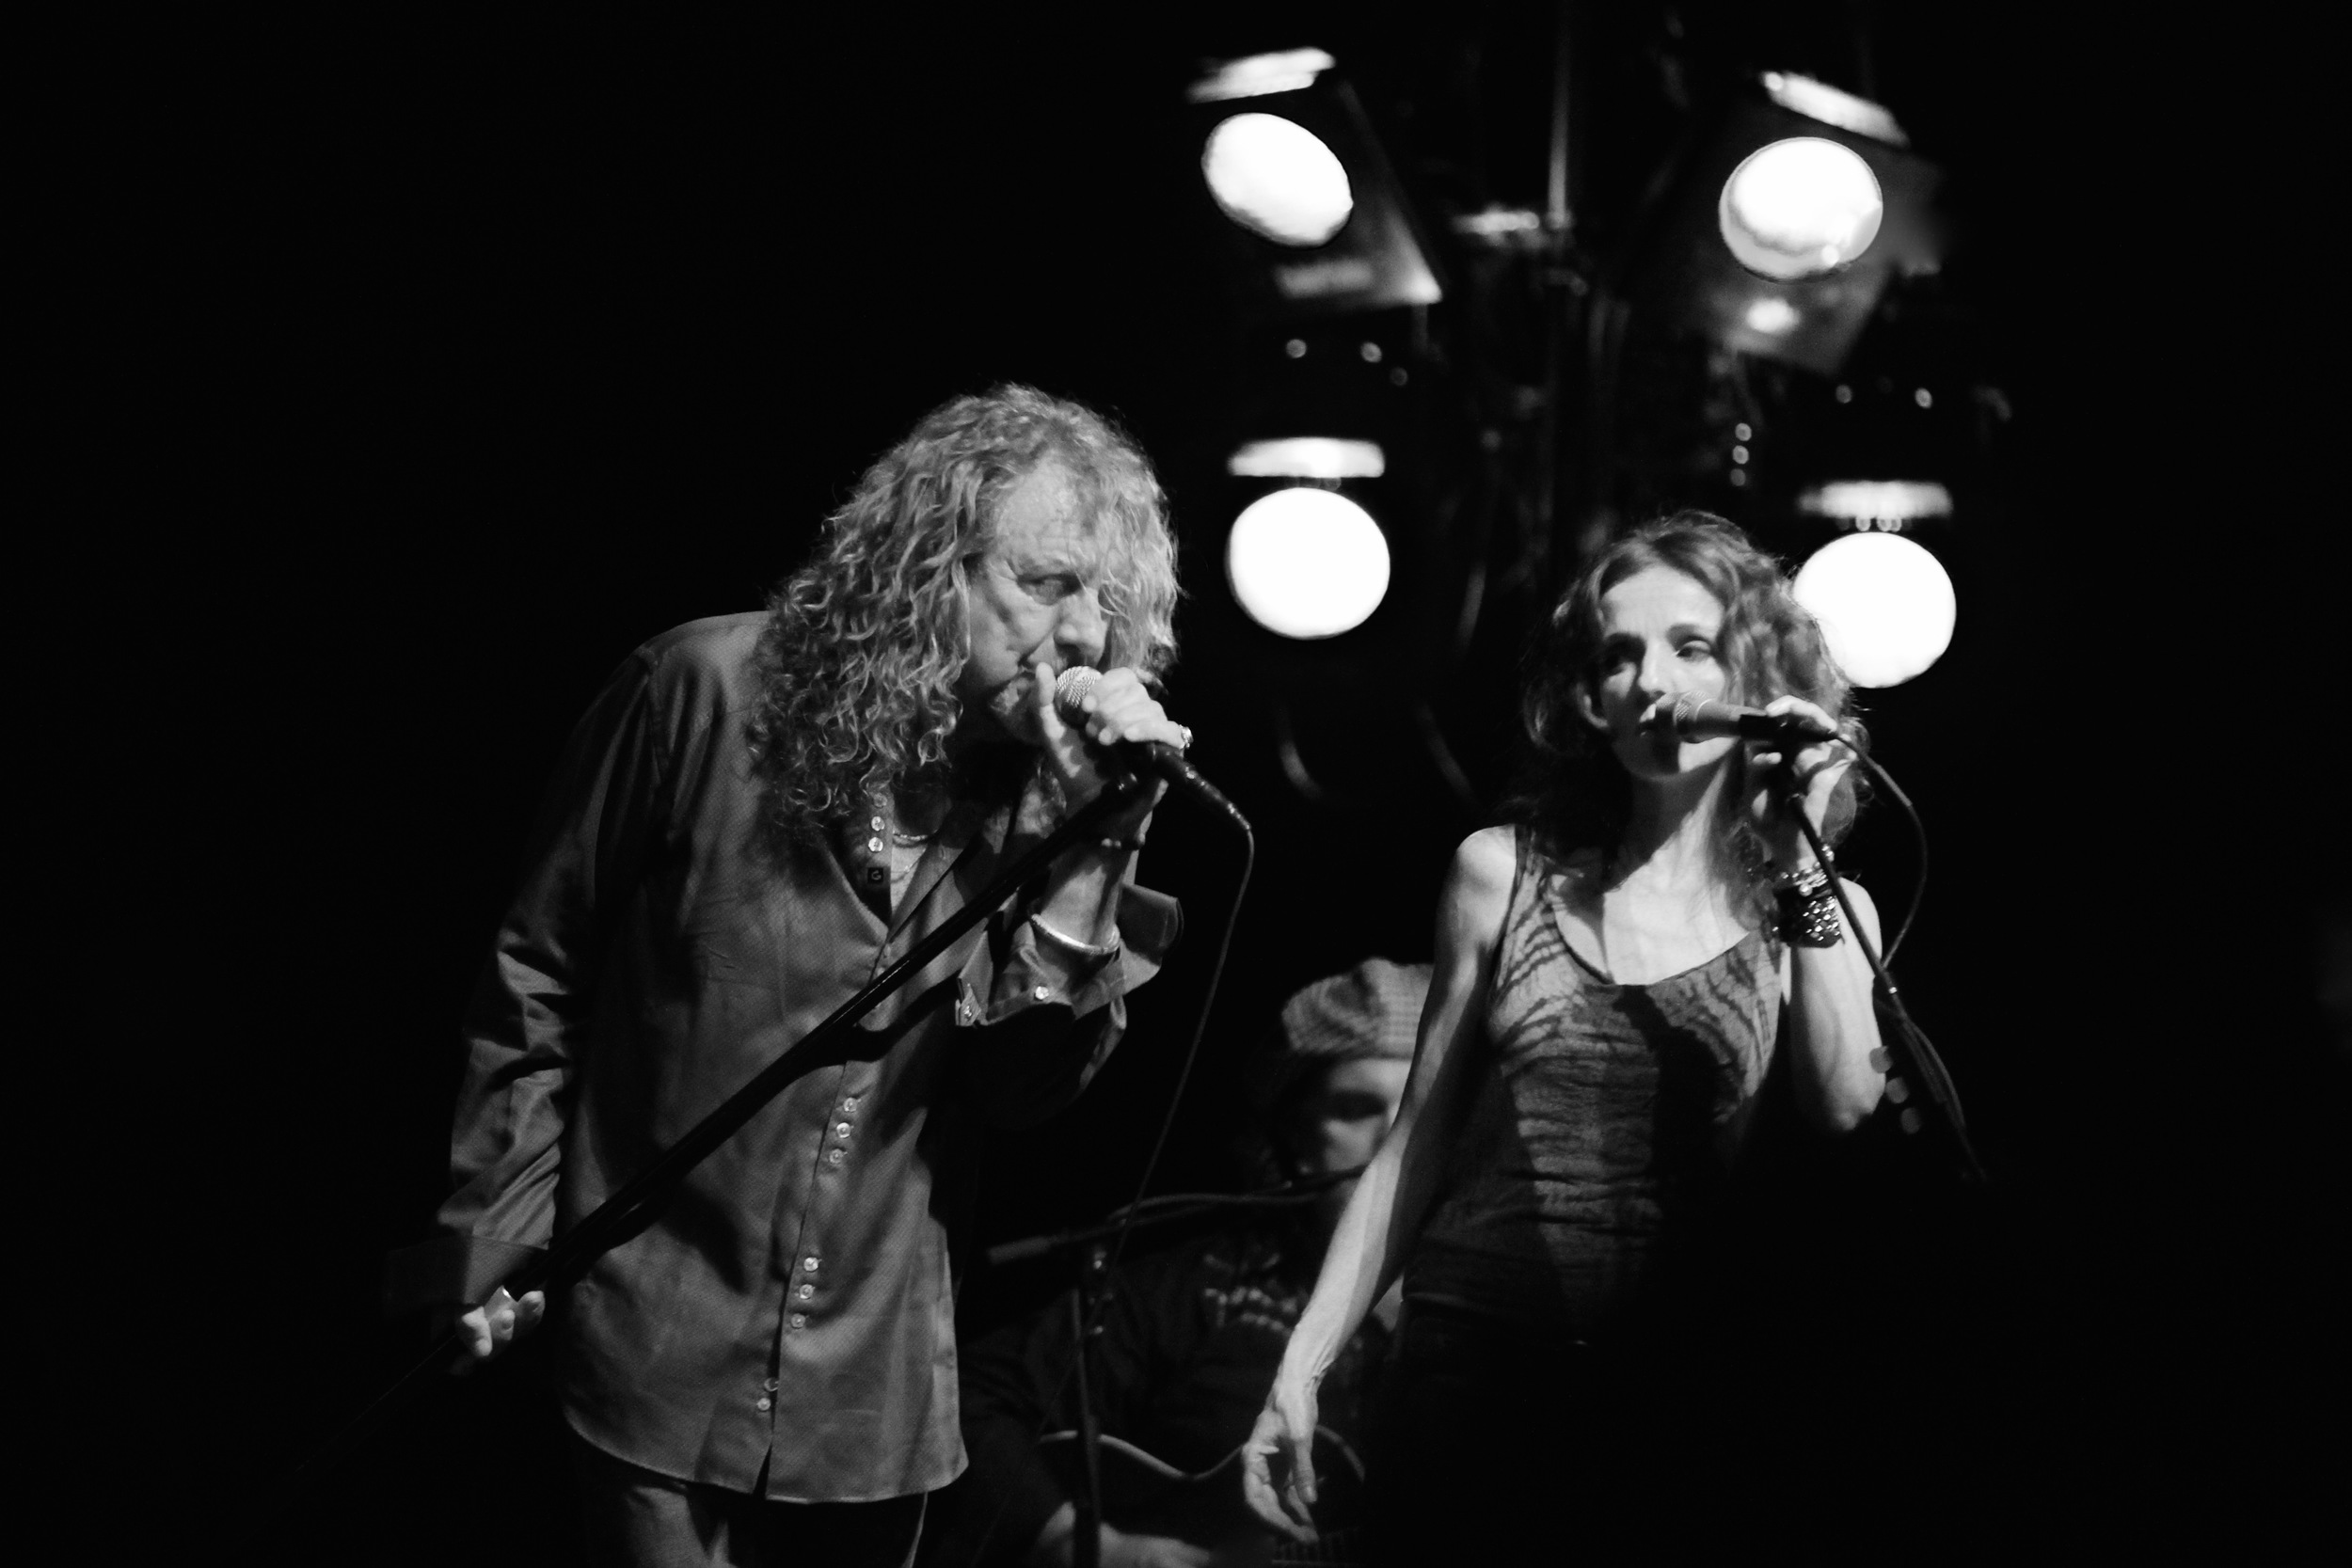 Robert Plant & Patty Griffin